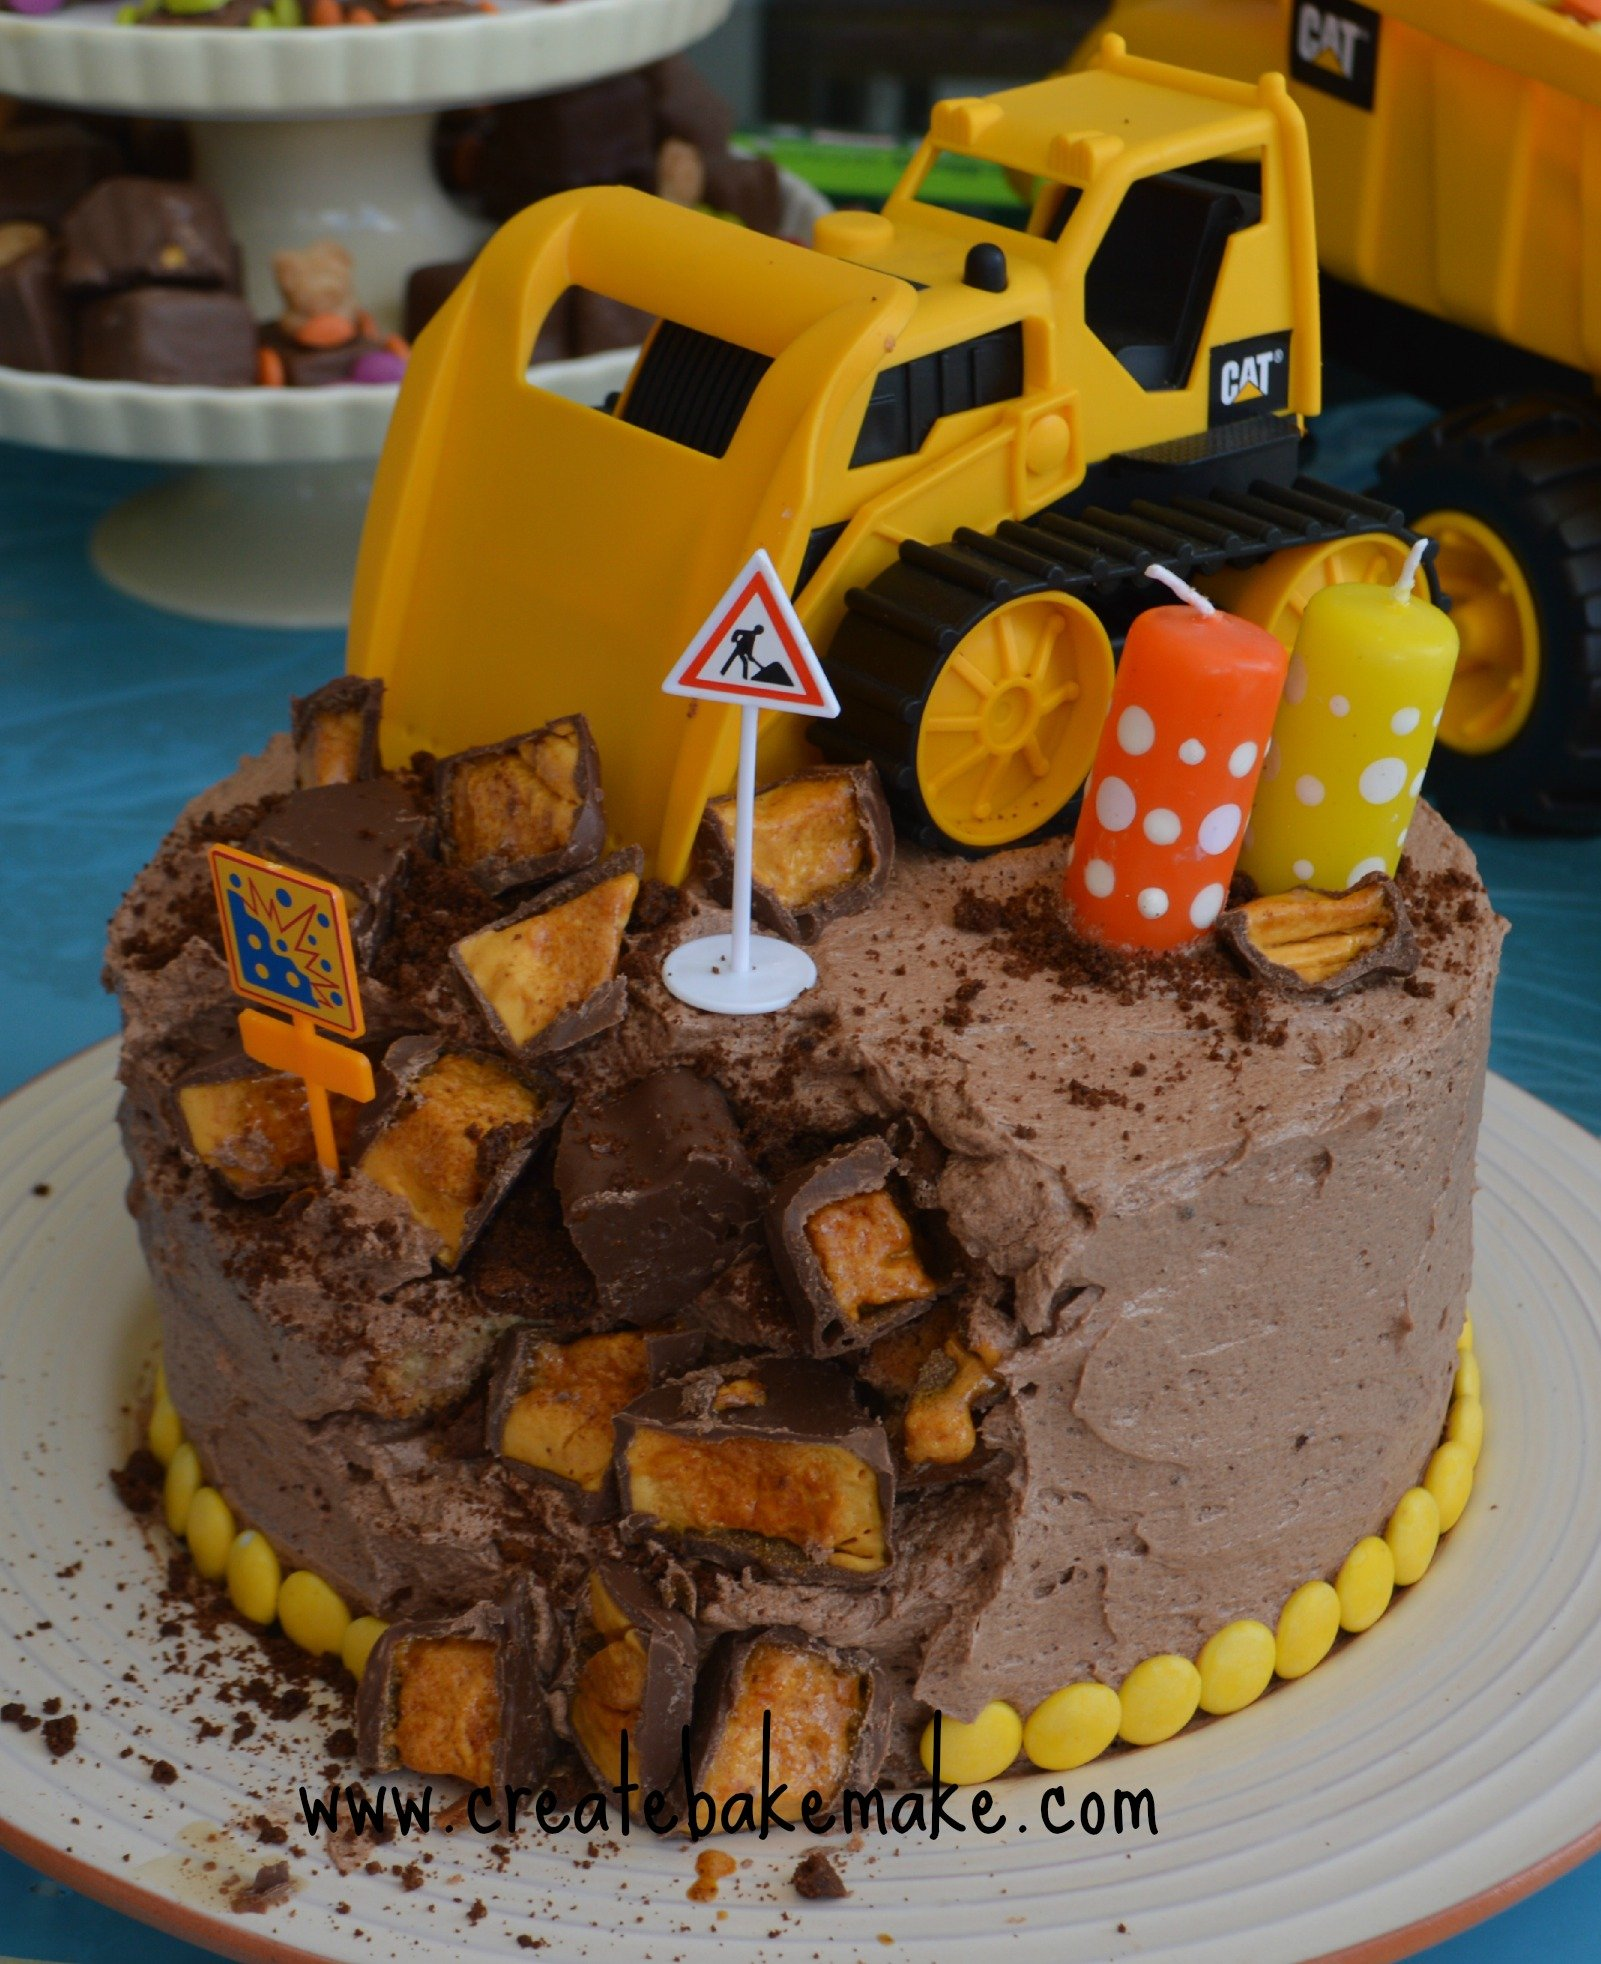 Excellent A Construction Party Create Bake Make Funny Birthday Cards Online Elaedamsfinfo